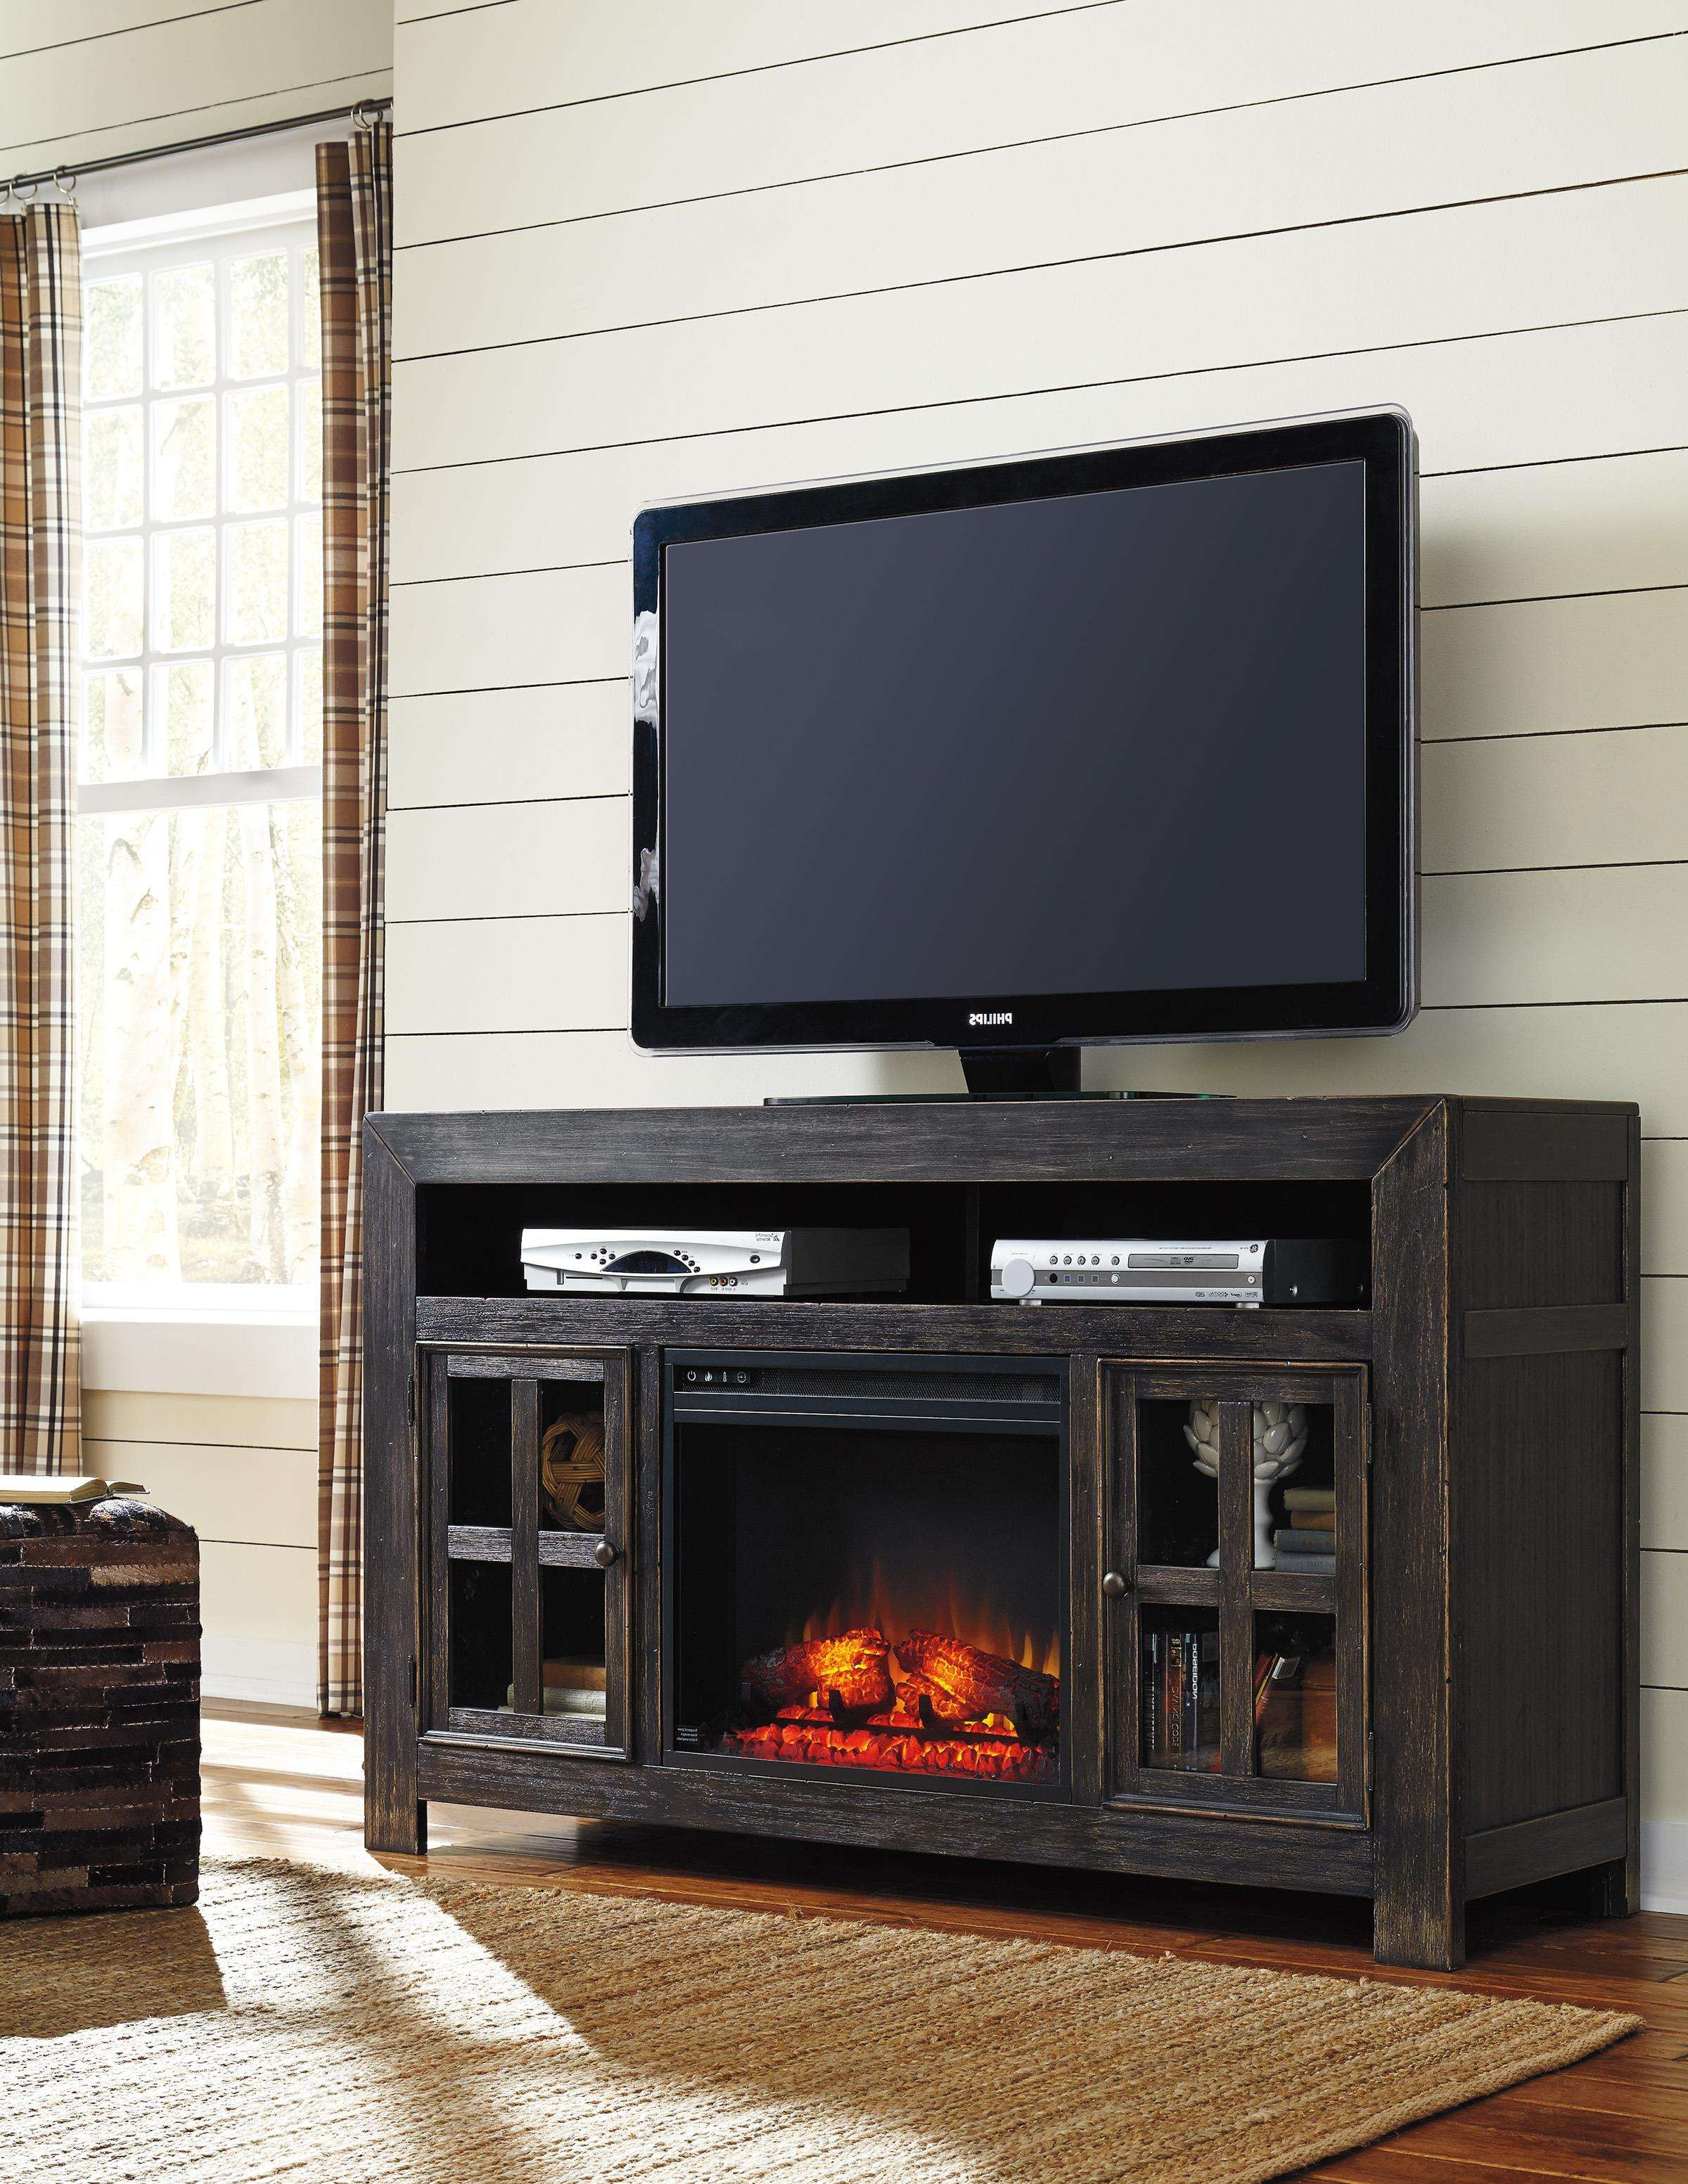 Decoration : Fireplace Tv Stands On Sale Electric Fireplace With With Regard To Tv Stands 38 Inches Wide (View 8 of 15)